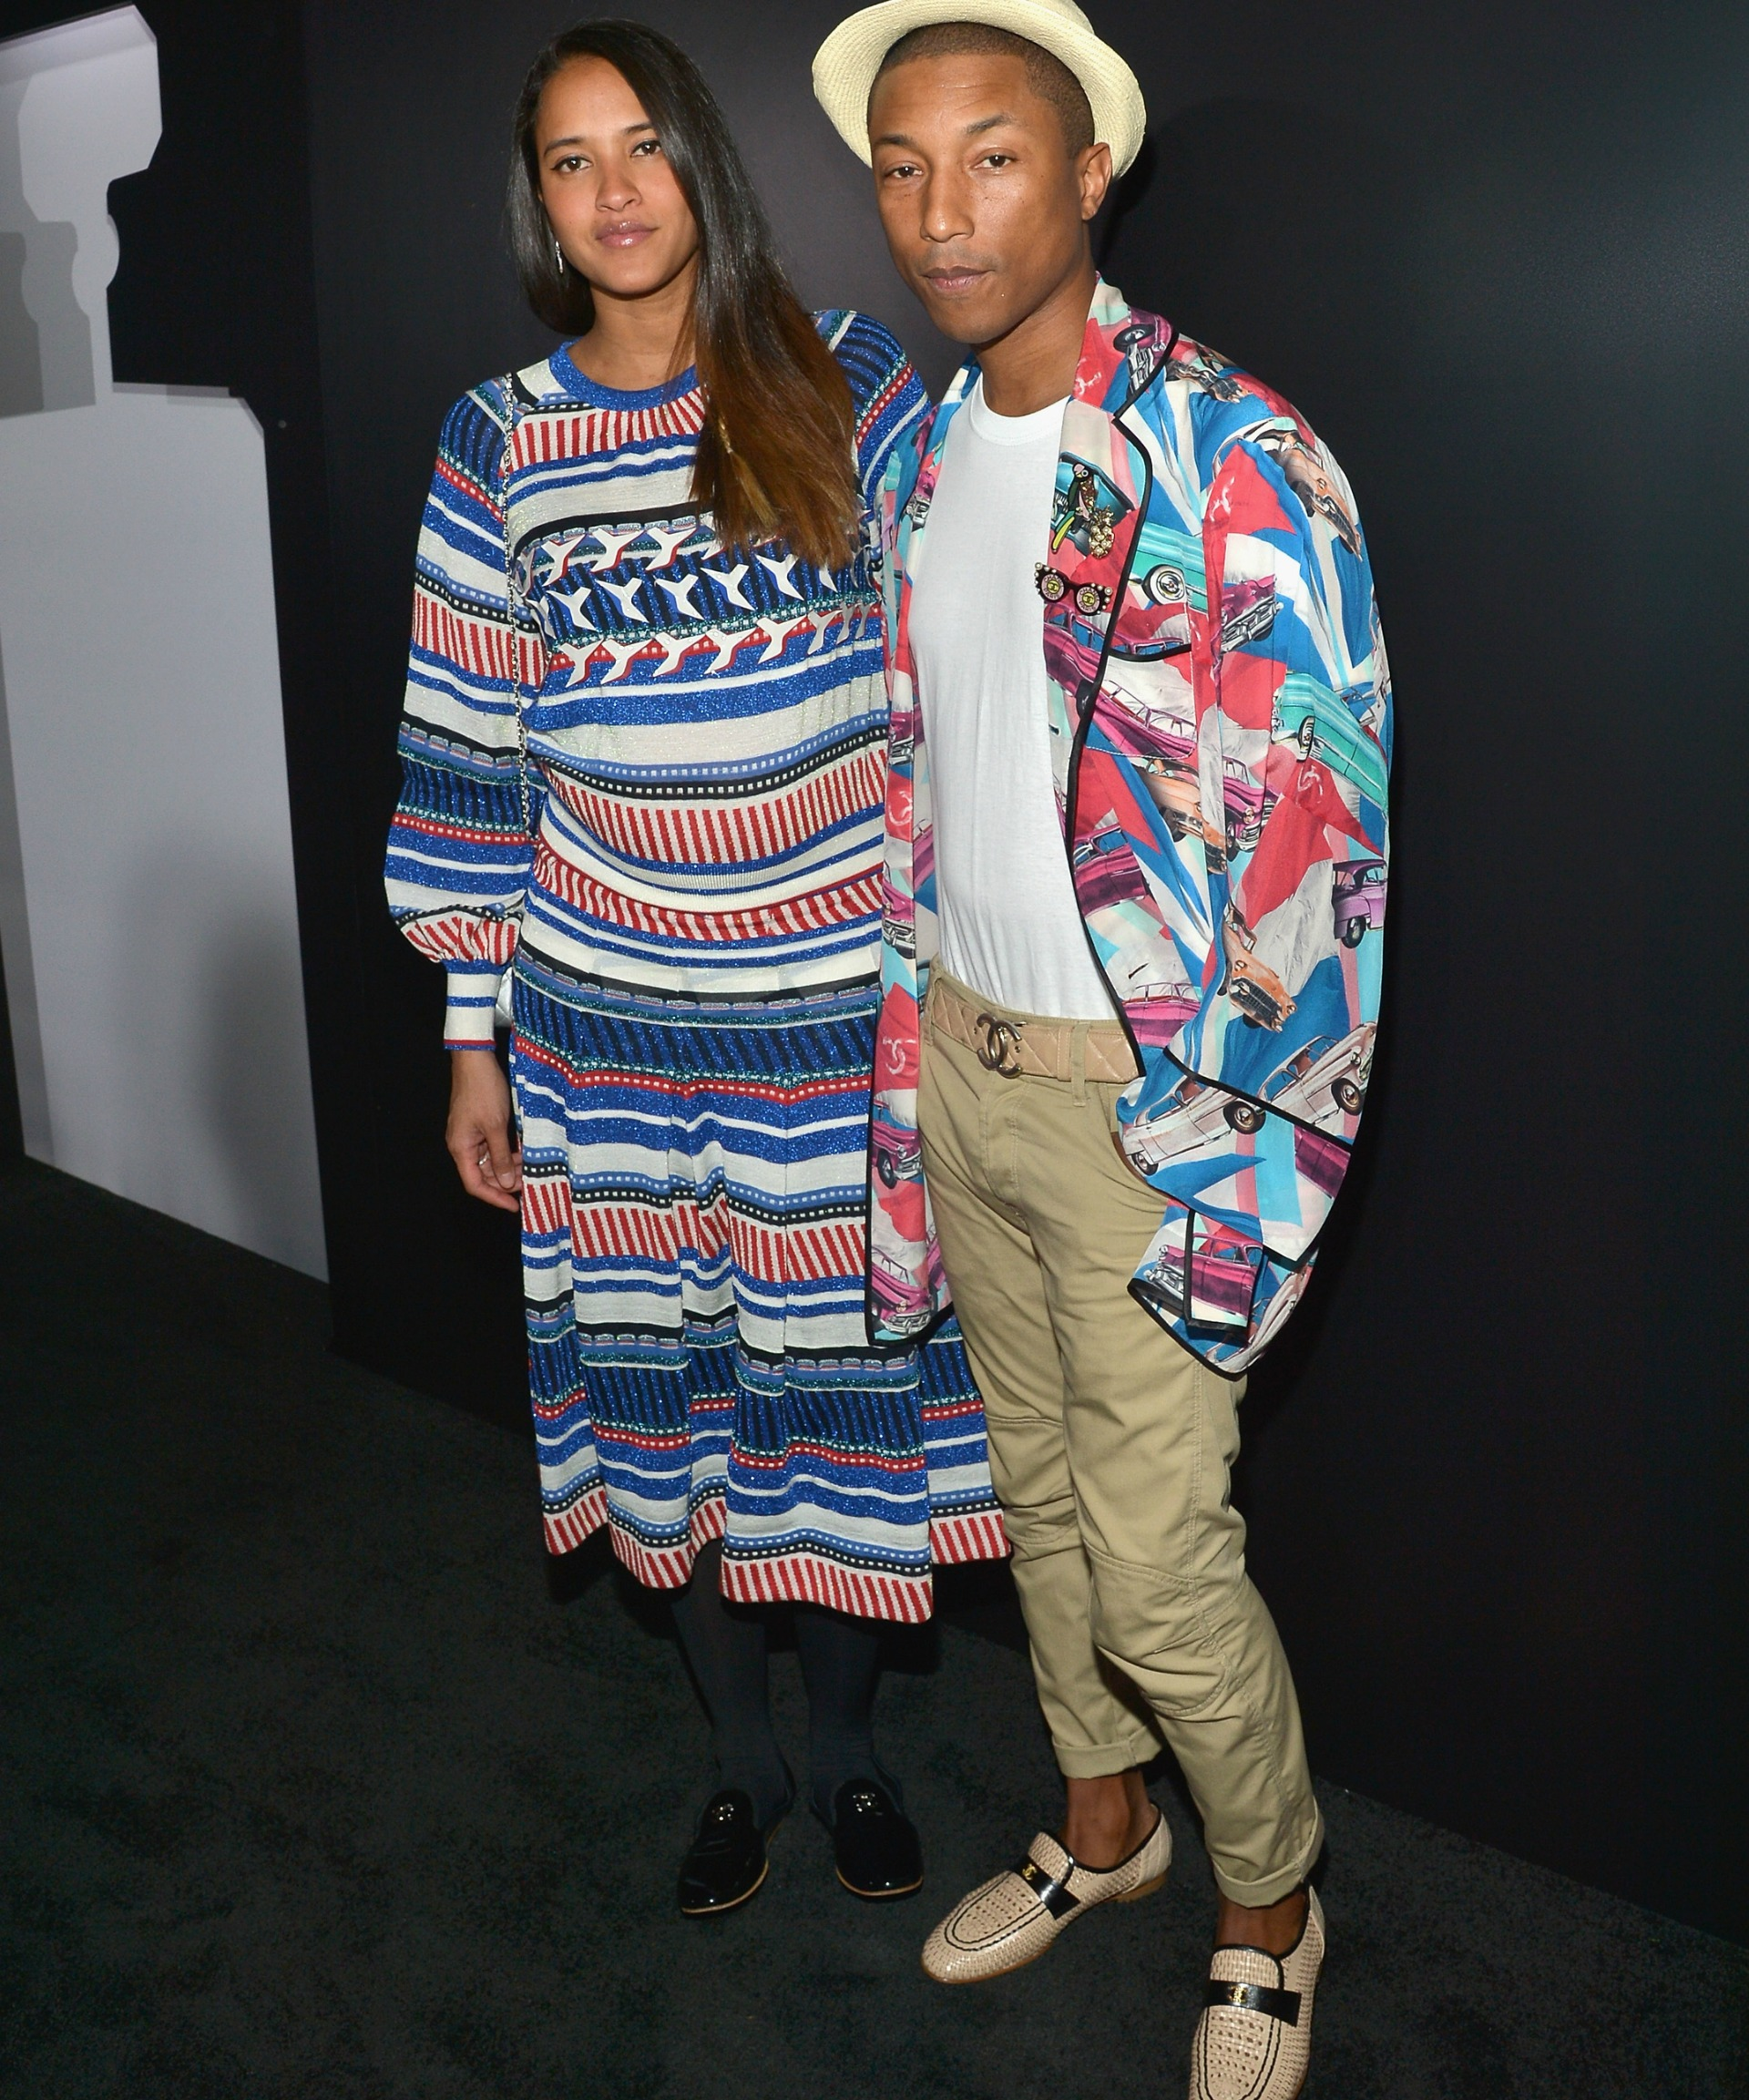 Pharrell Williams and wife Helen Lasichanh have had triplets!